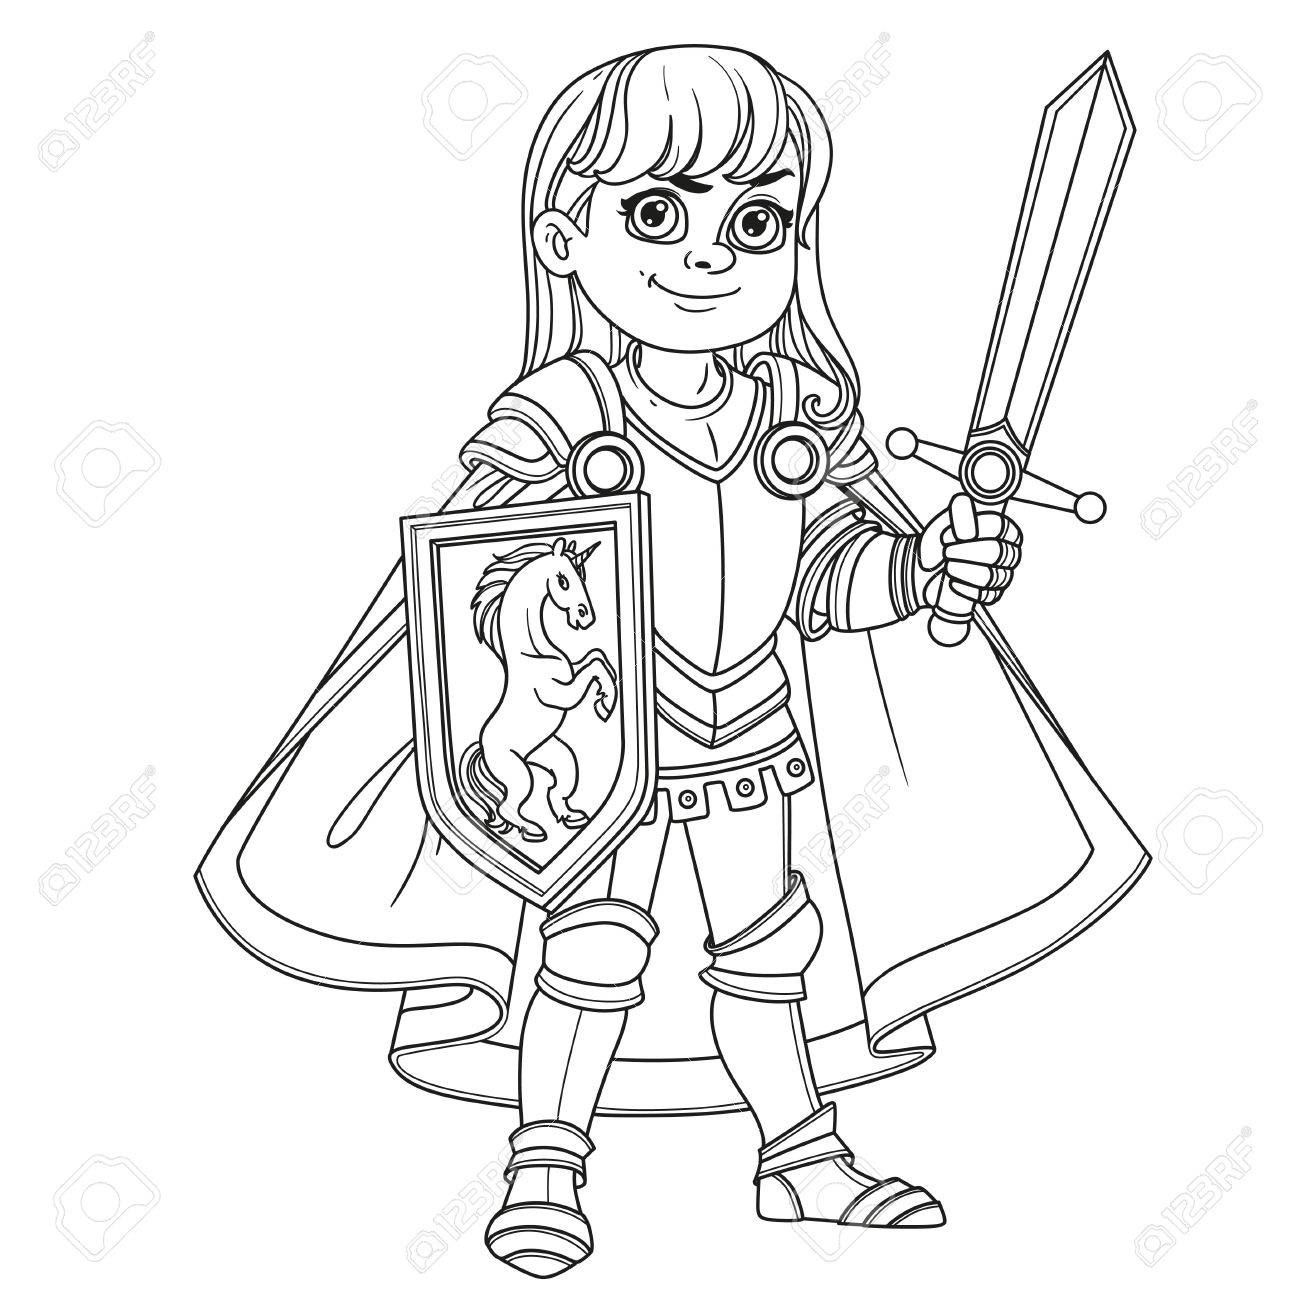 Cute Boy In Knight Or Paladin Armor Costume Outlined For Coloring Page Stock Vector